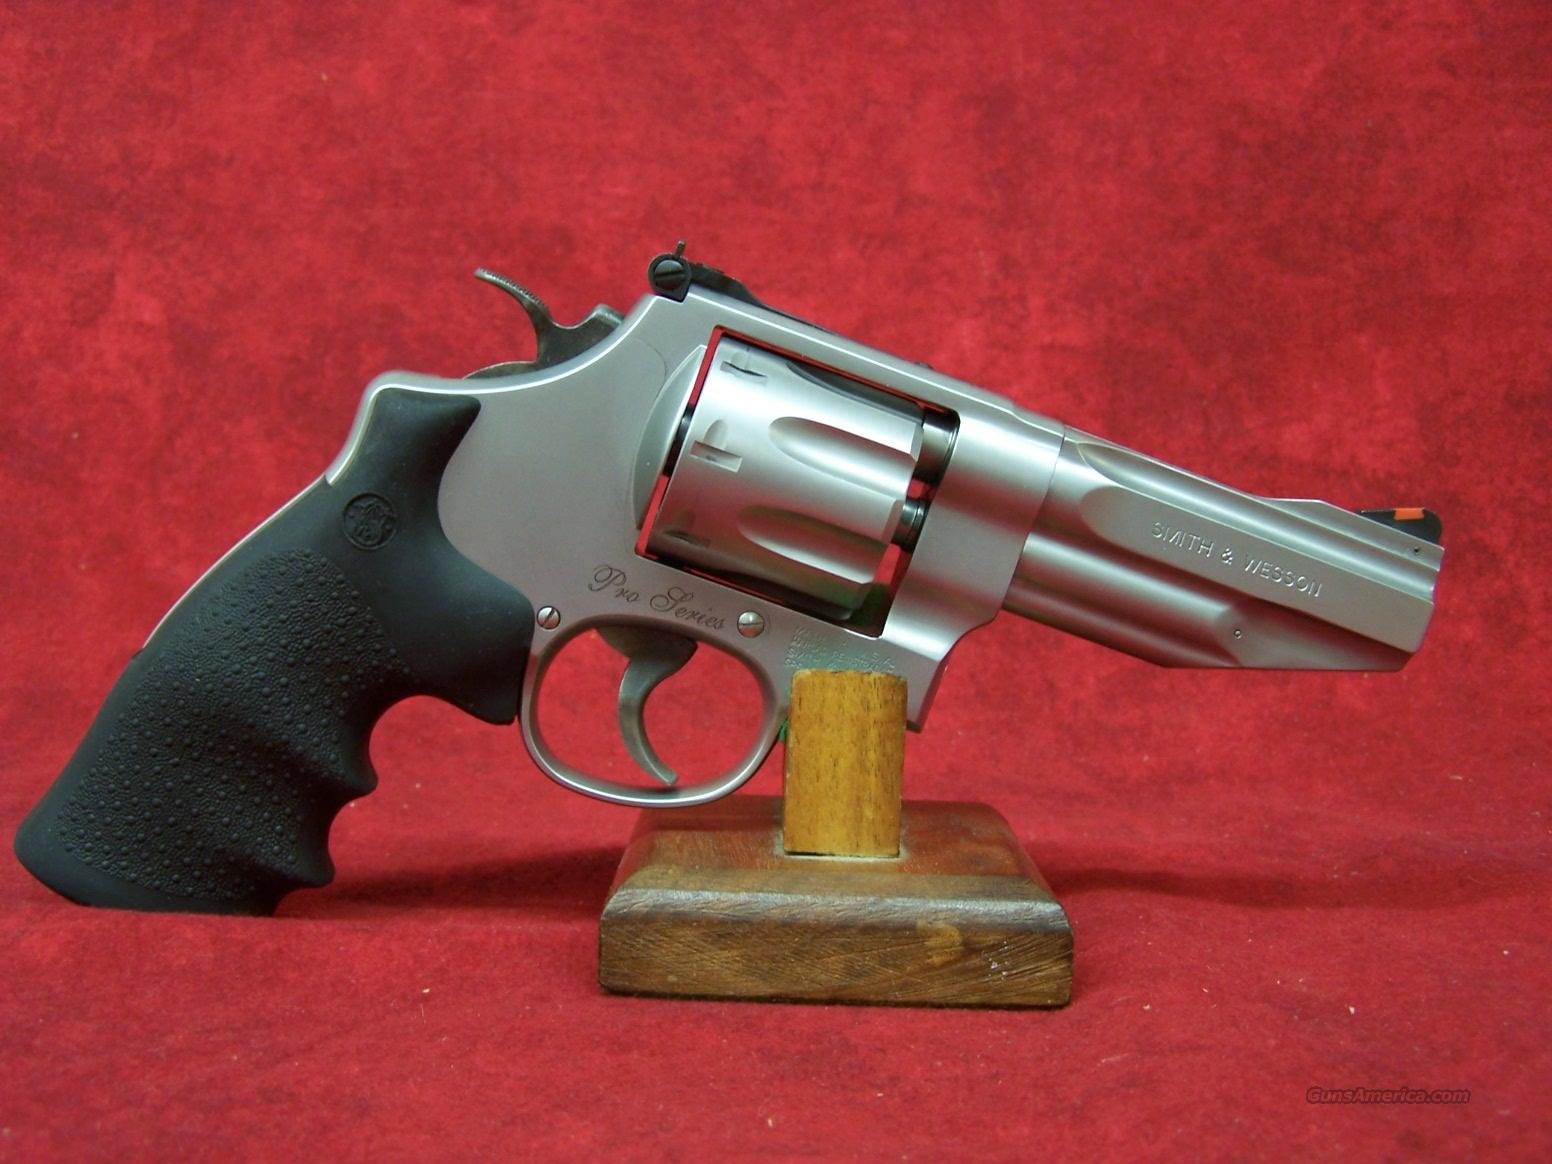 Smith & Wesson Model 627 Pro Series .357 Magnum 4 Inch Barrel (178014)  Guns > Pistols > Smith & Wesson Revolvers > Full Frame Revolver